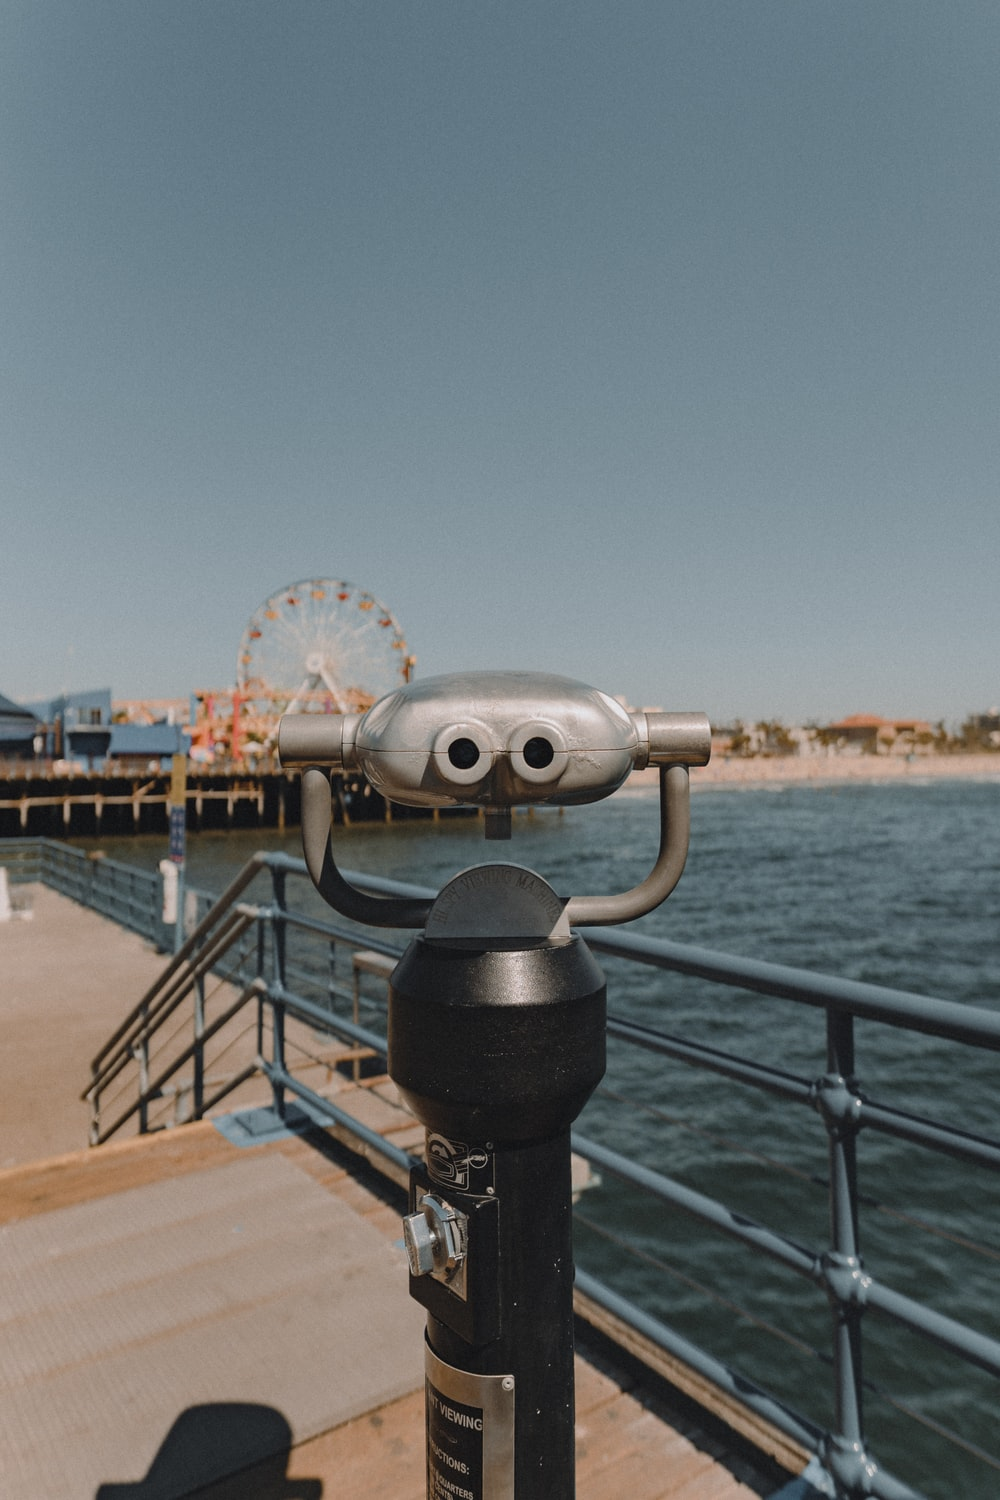 gray and black coin operated telescope on dock during daytime